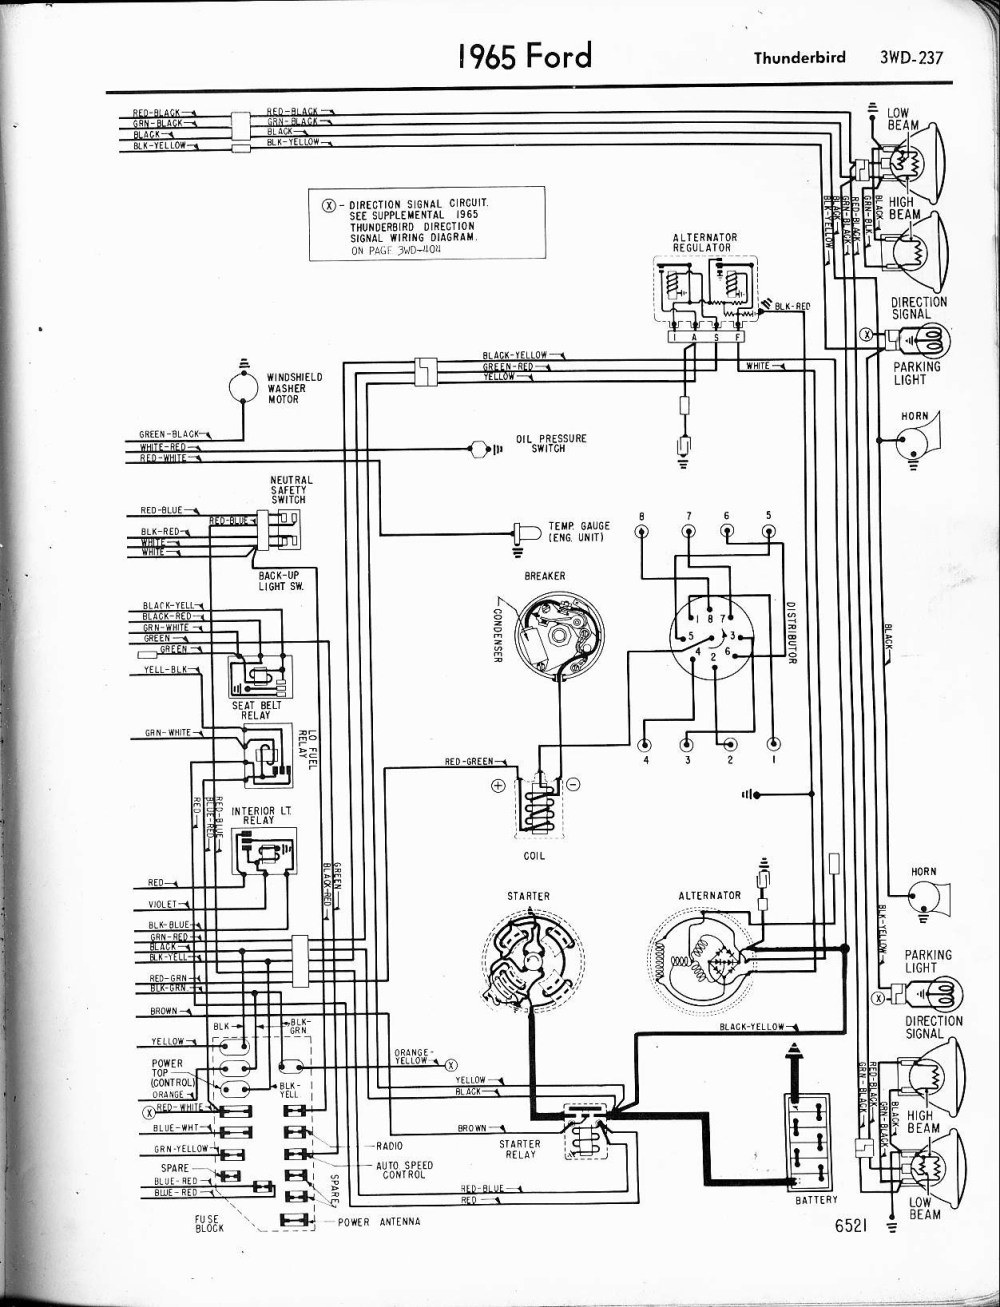 medium resolution of mazda b3000 engine diagram ford econoline wiring diagram also 1966 ford thunderbird wiring of mazda b3000